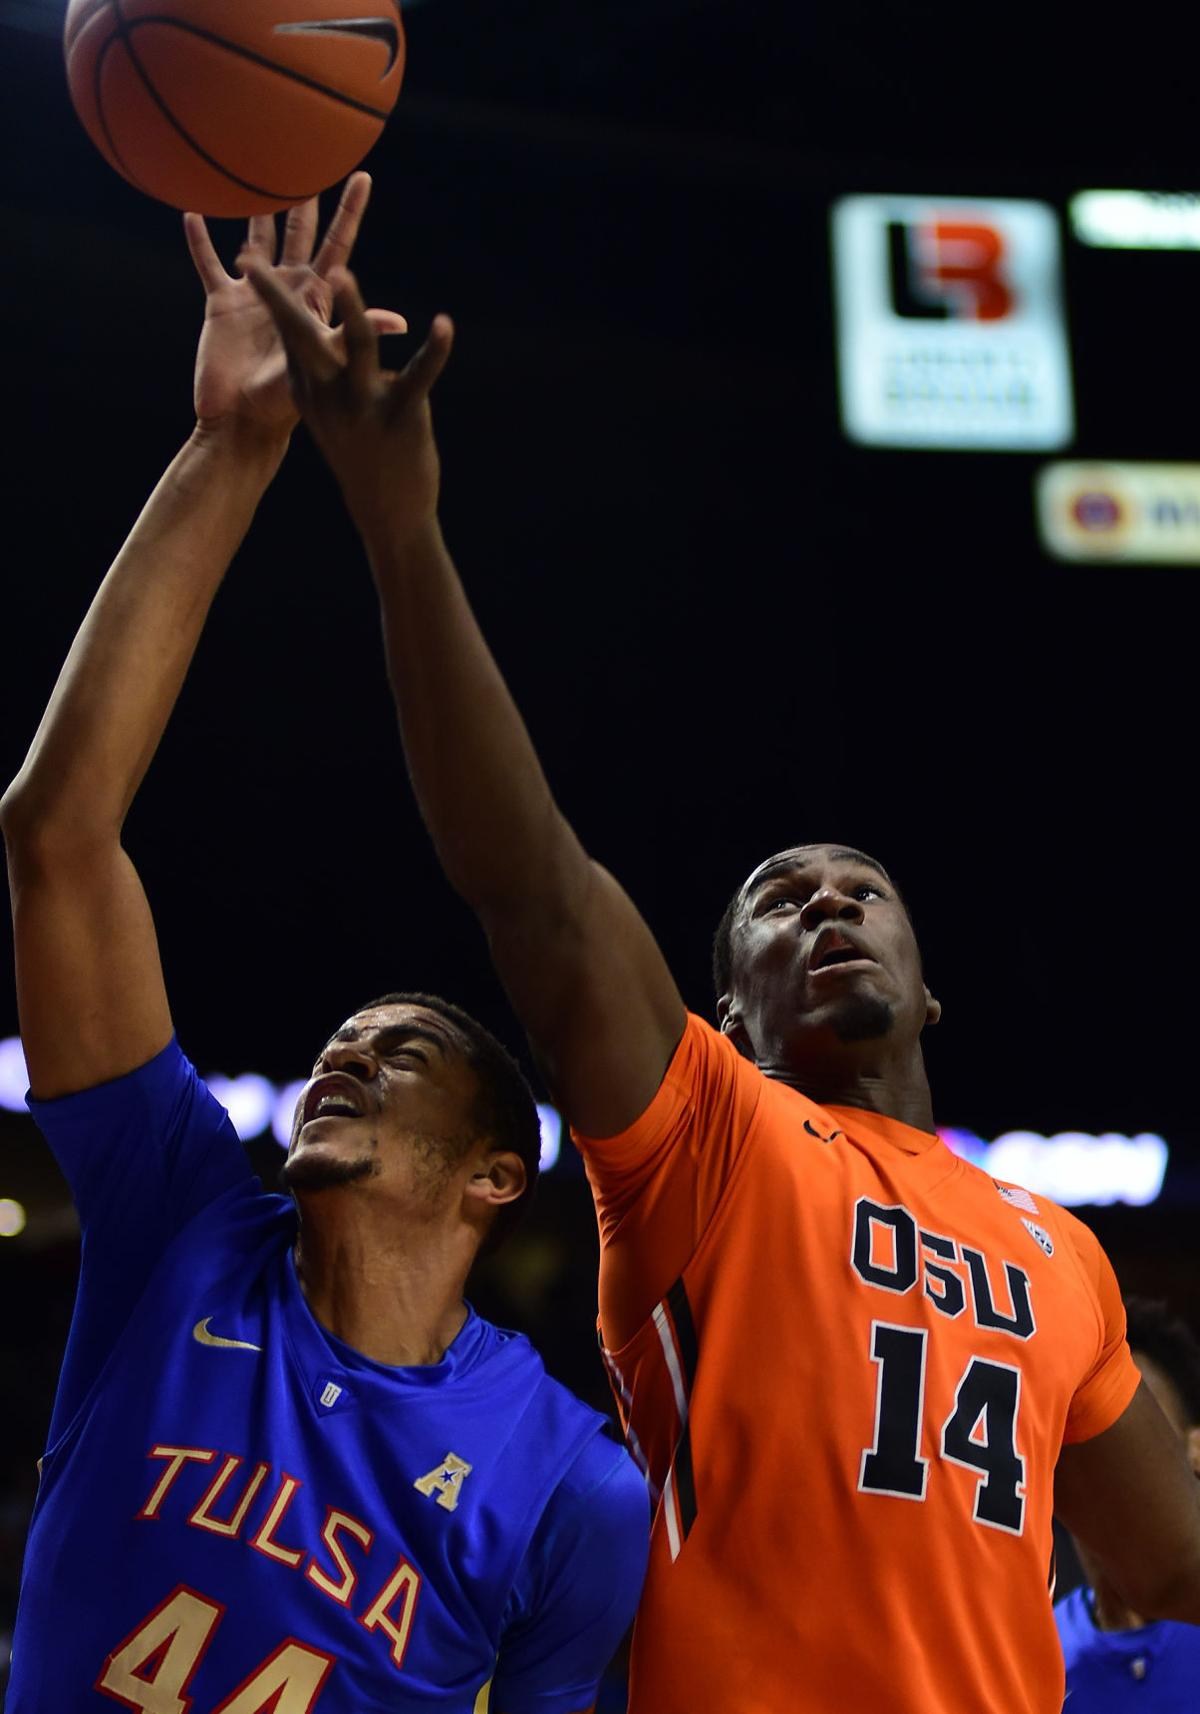 OSU men's basketball: Beavers pick up the pace on defense